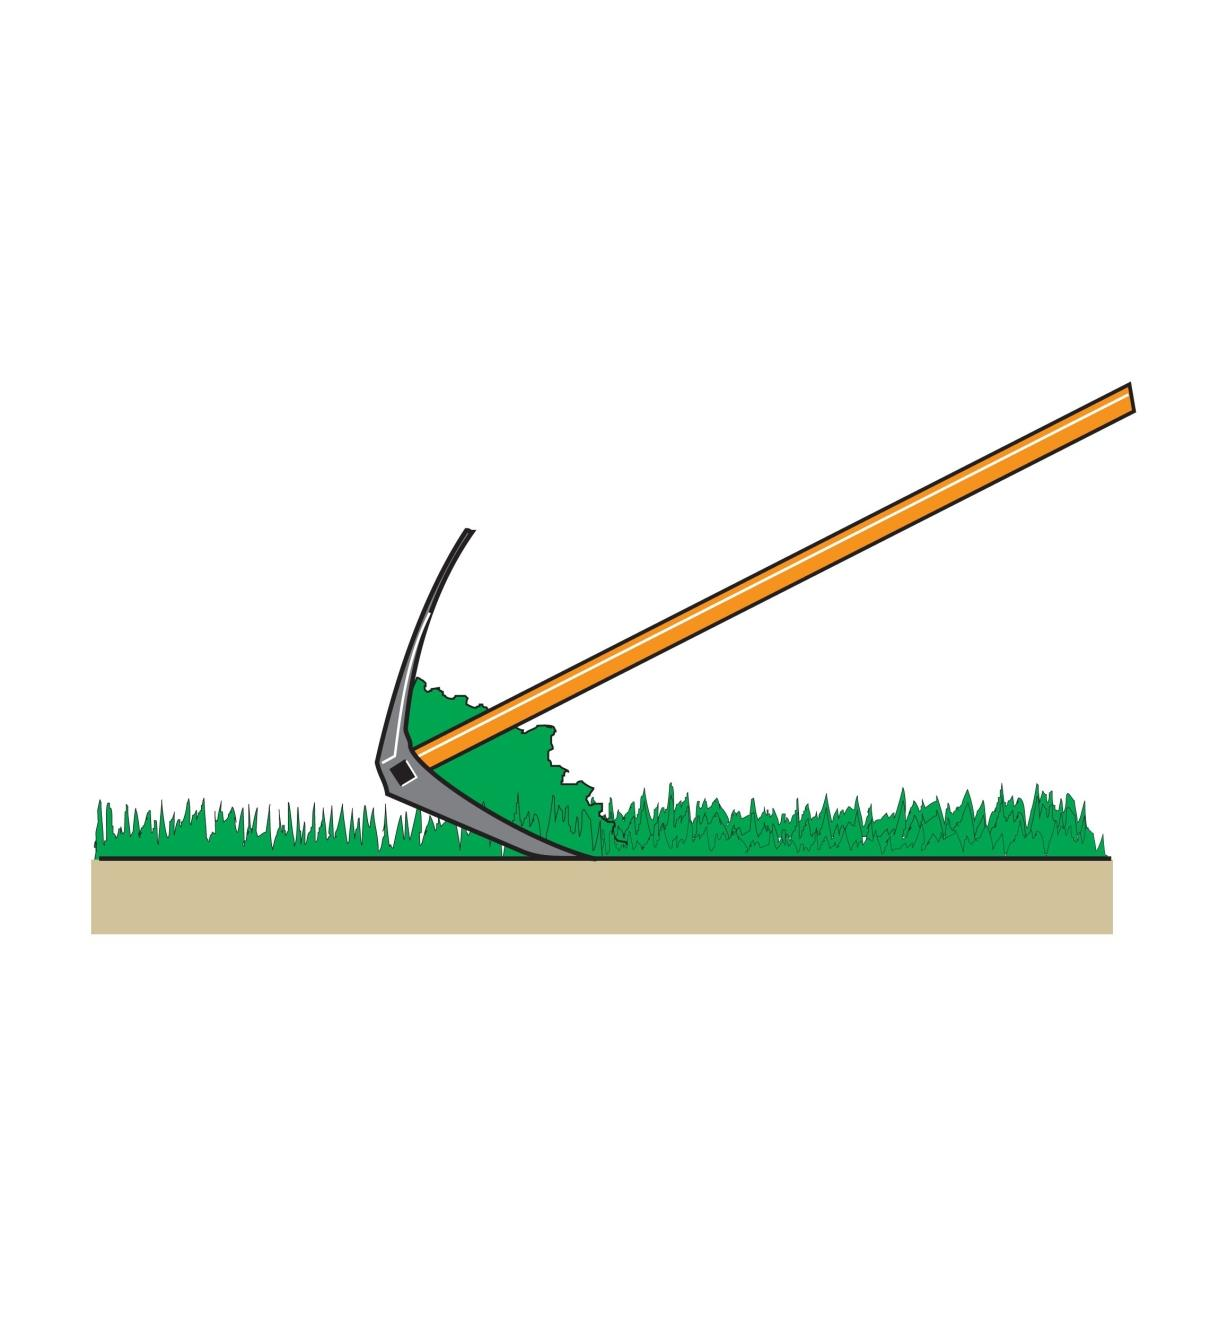 Illustration of the Power Rake collecting grass clippings